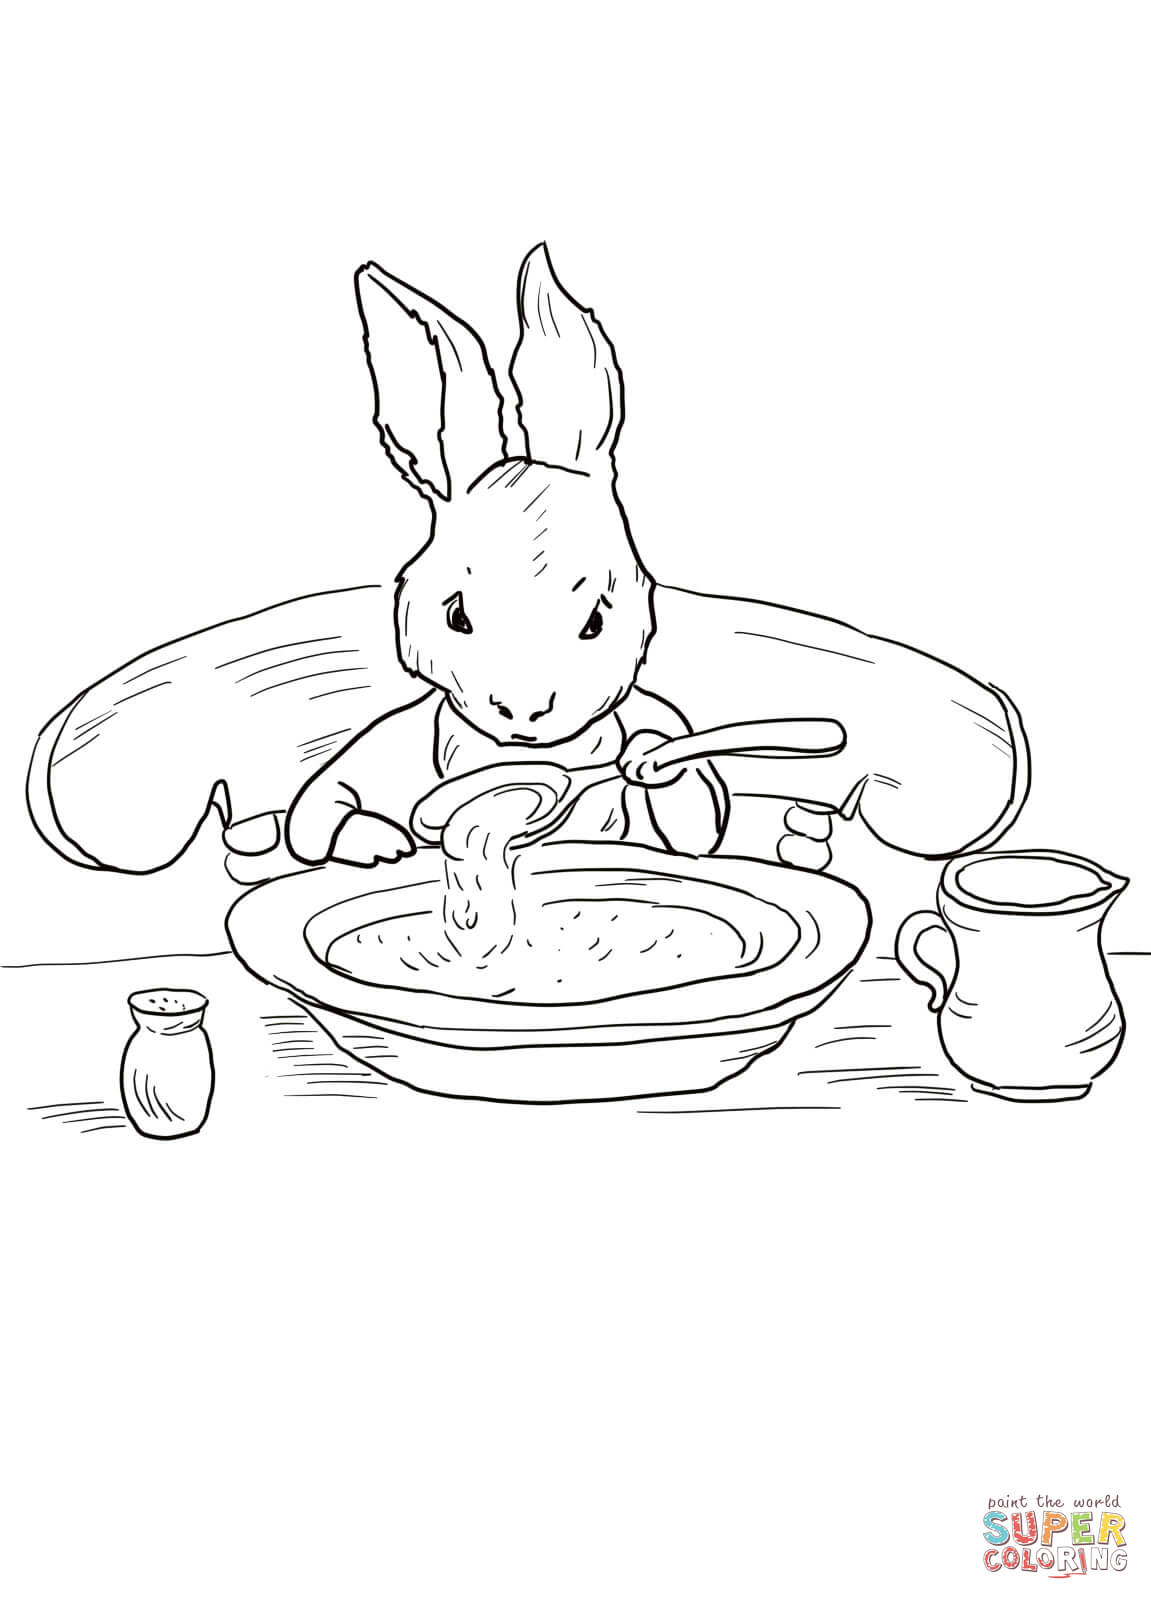 Peter Rabbit At Home Coloring Page | Free Printable Coloring Pages - Free Printable Peter Rabbit Coloring Pages